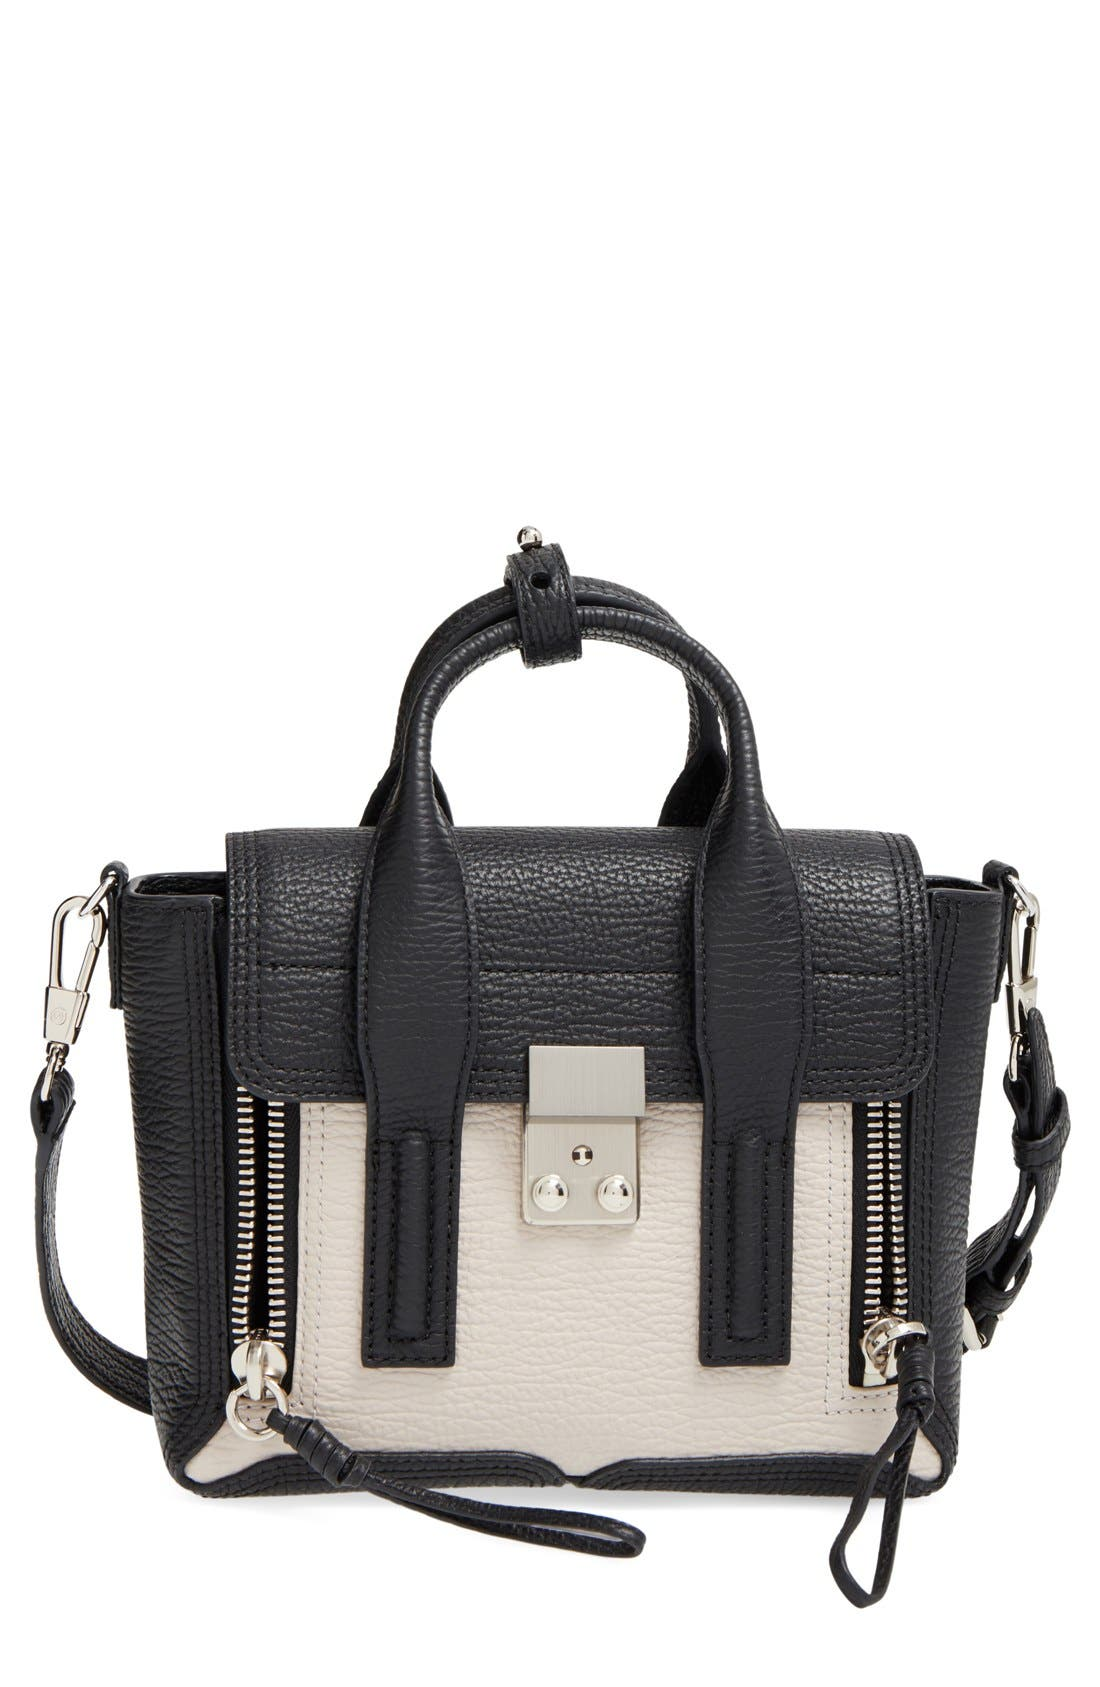 Alternate Image 1 Selected - 3.1 Phillip Lim 'Mini Pashli' Colorblock Satchel